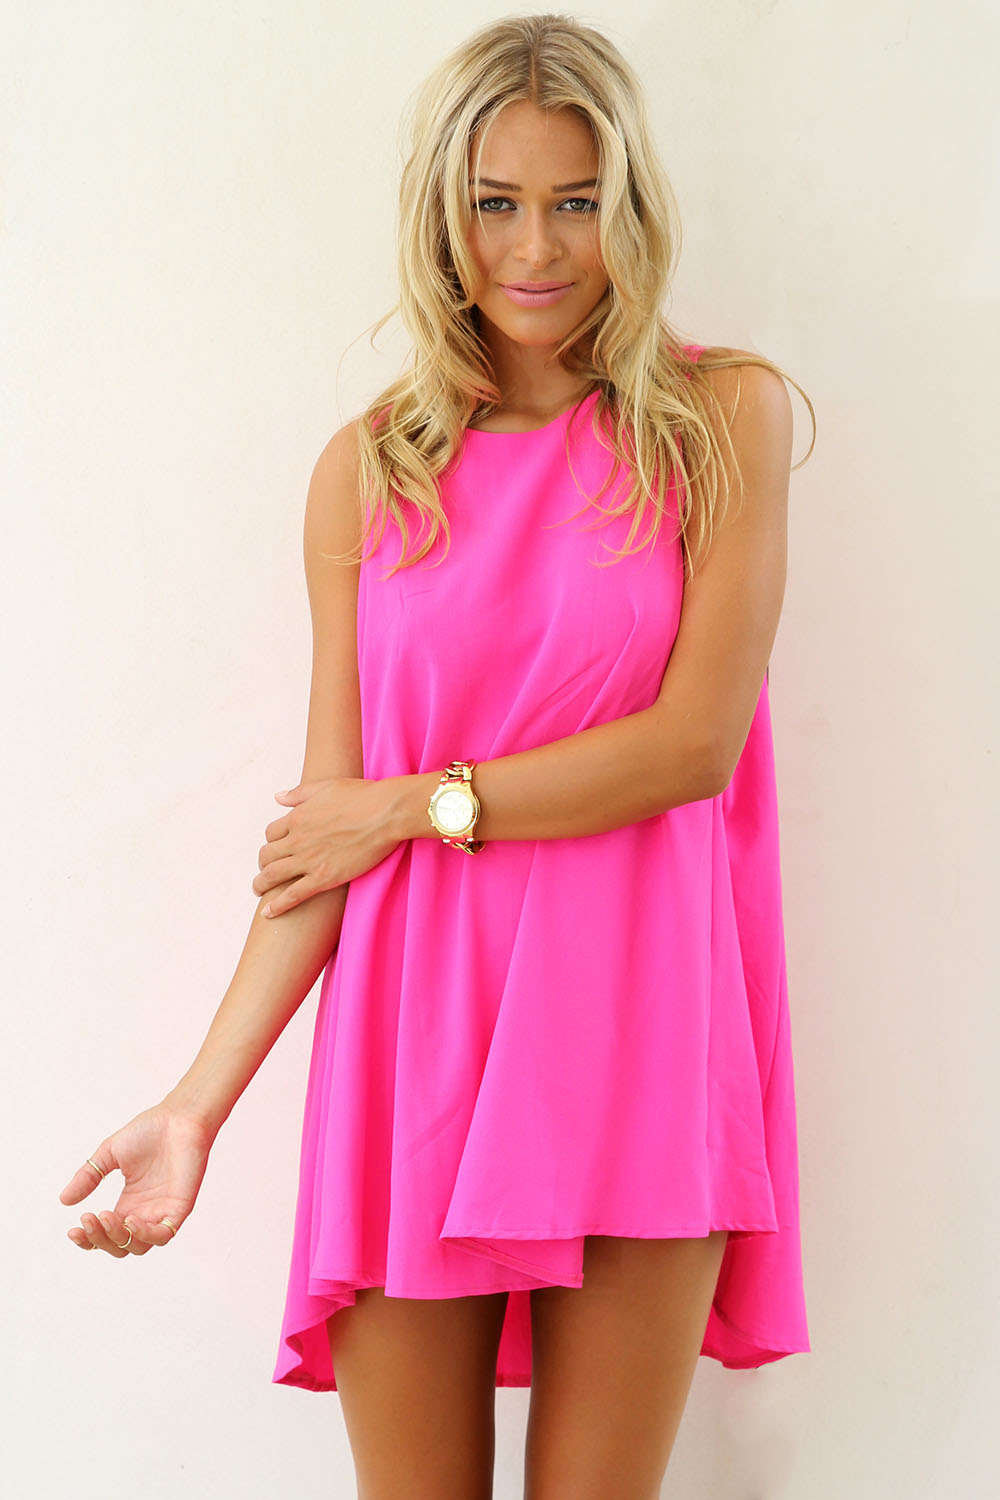 Mini Dress - Pink Sleeveless A-Line Dress with | UsTrendy